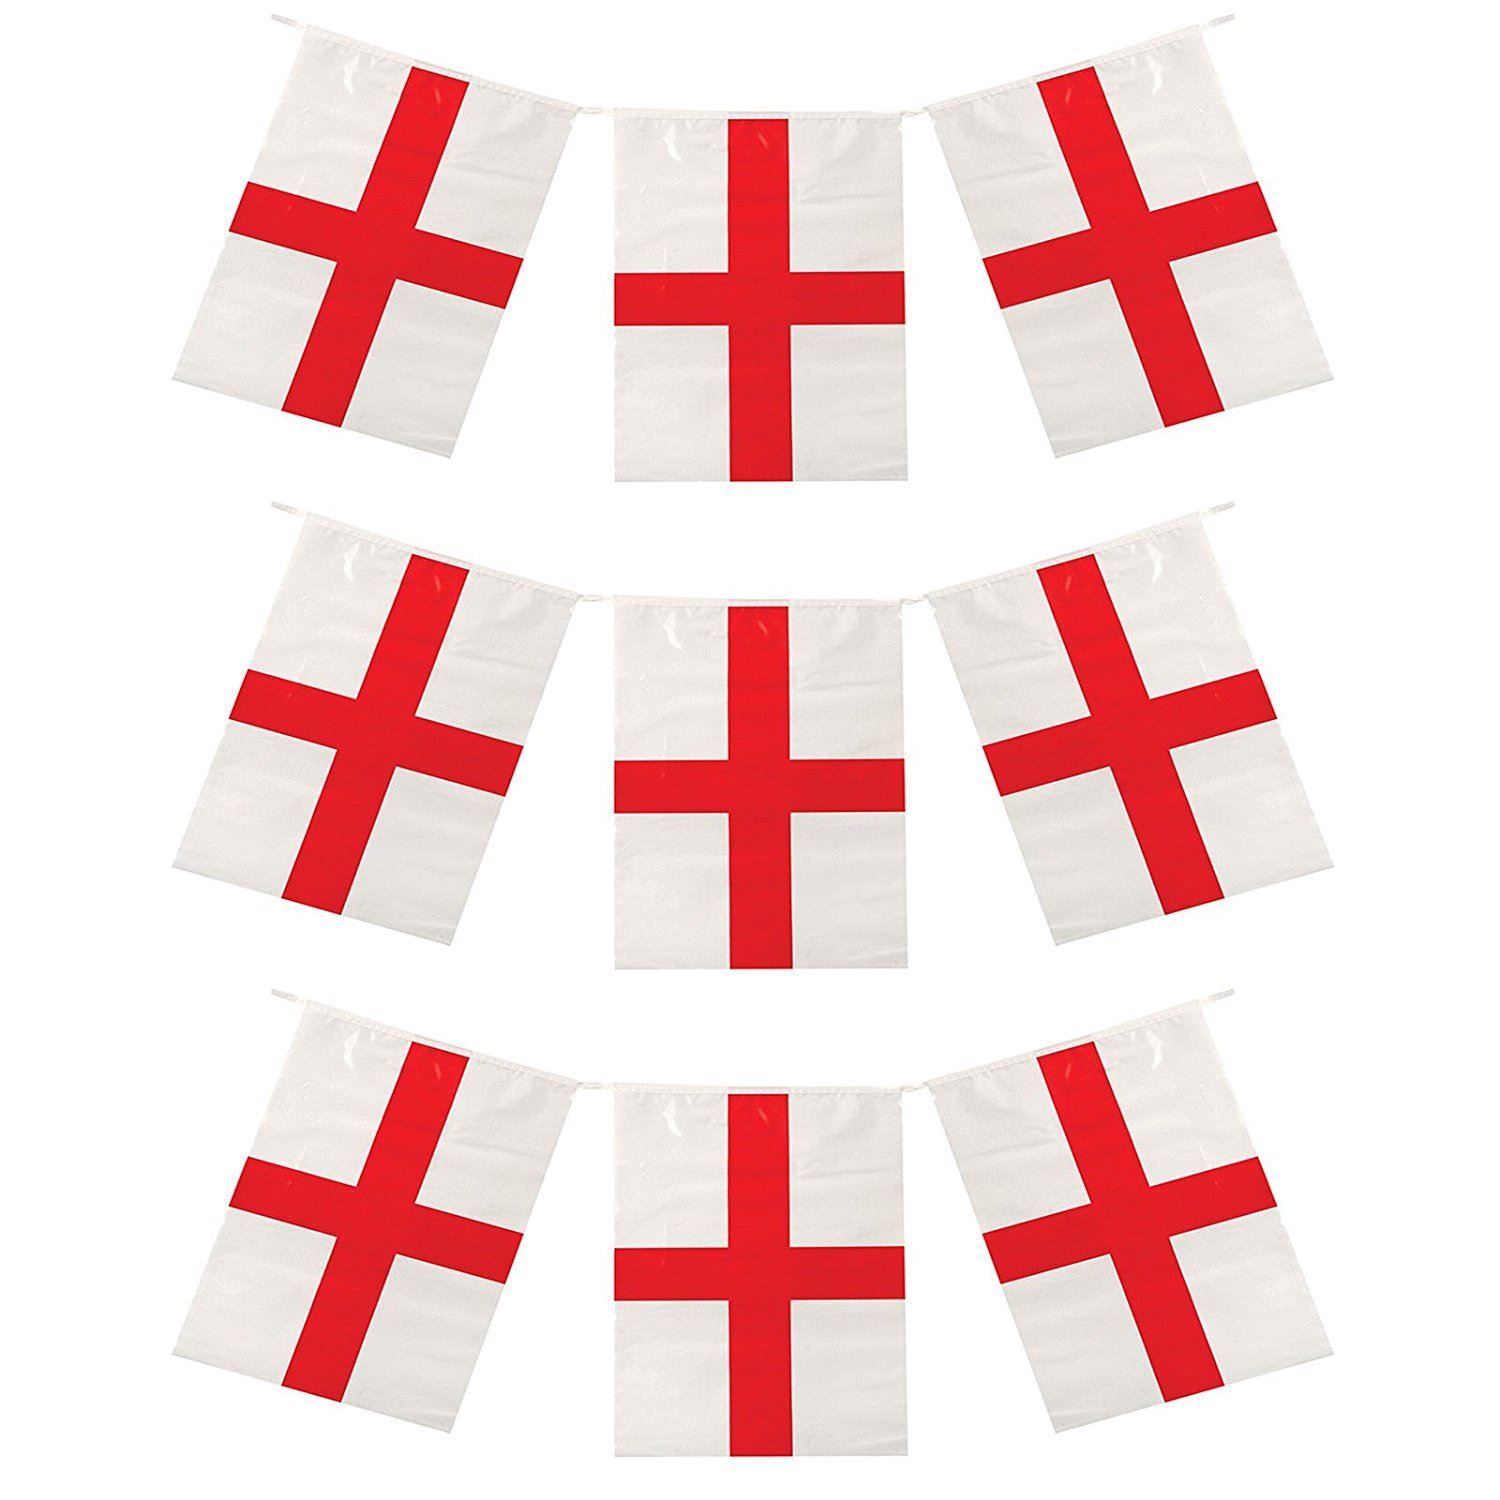 Large-5ft-x-3ft-Country-Flags-Buntings-Decoration-Teams-For-2019-Rugby-World-Cup miniatuur 11